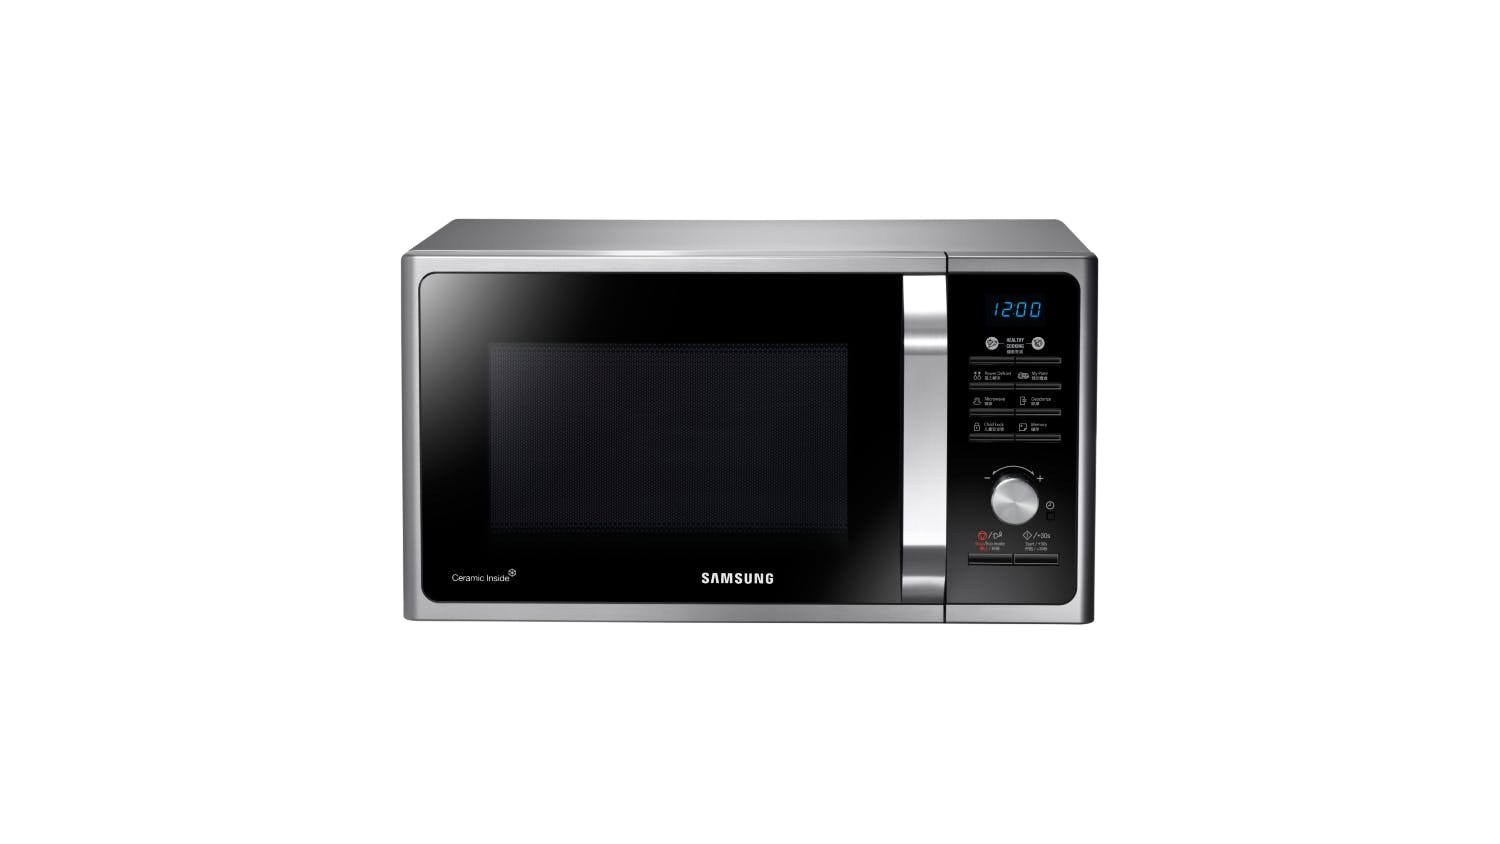 Samsung 23l Solo Type Microwave Oven